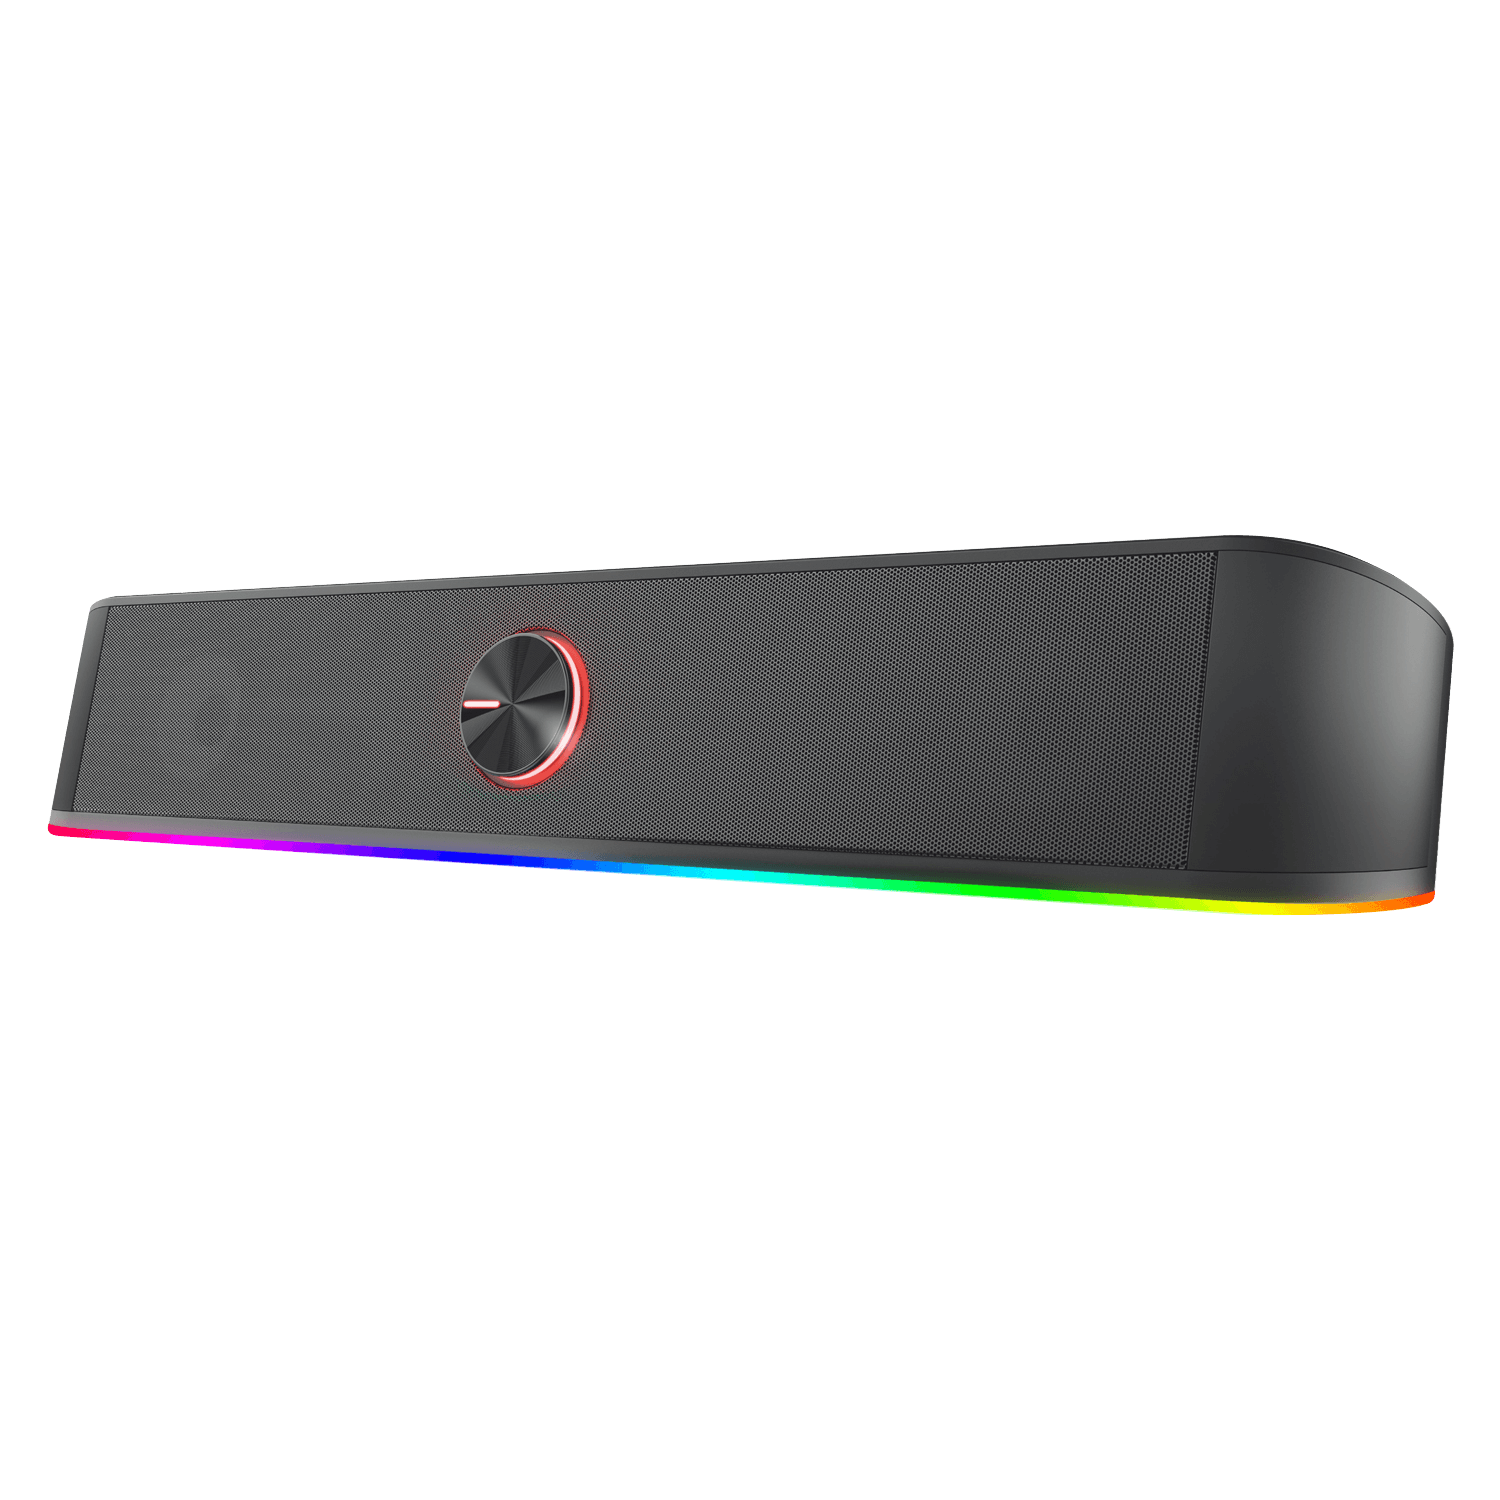 GS560 RGB REDRAGON SOUNDBAR